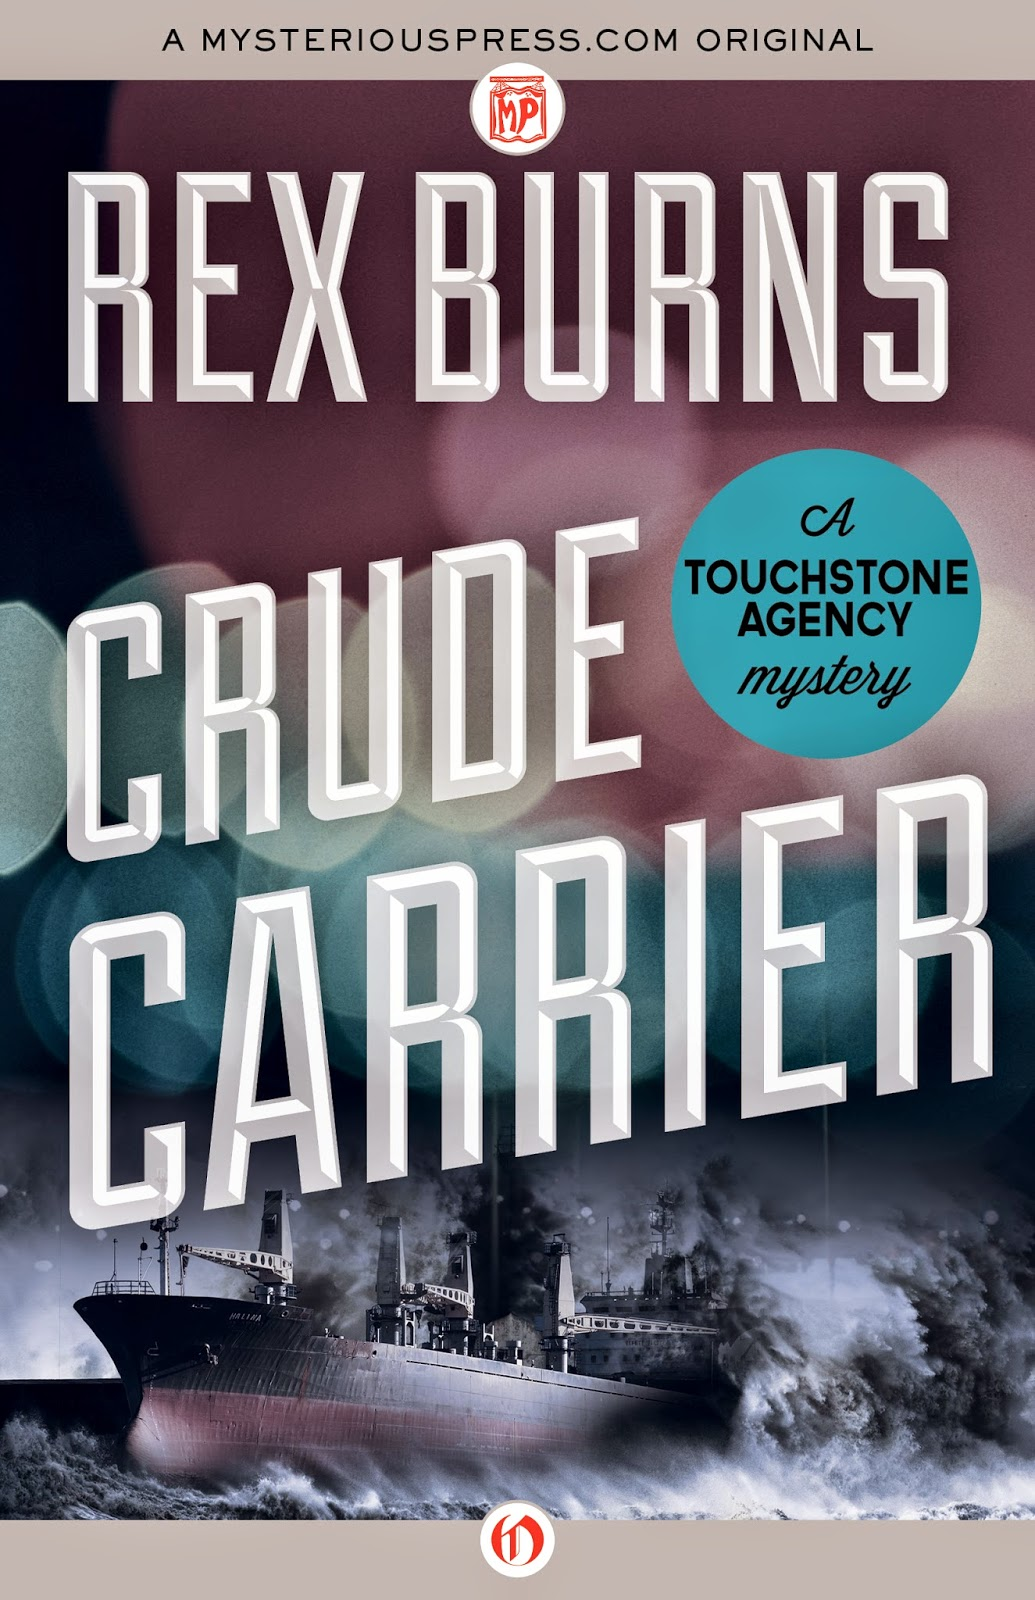 New interview with mystery author Rex Burns